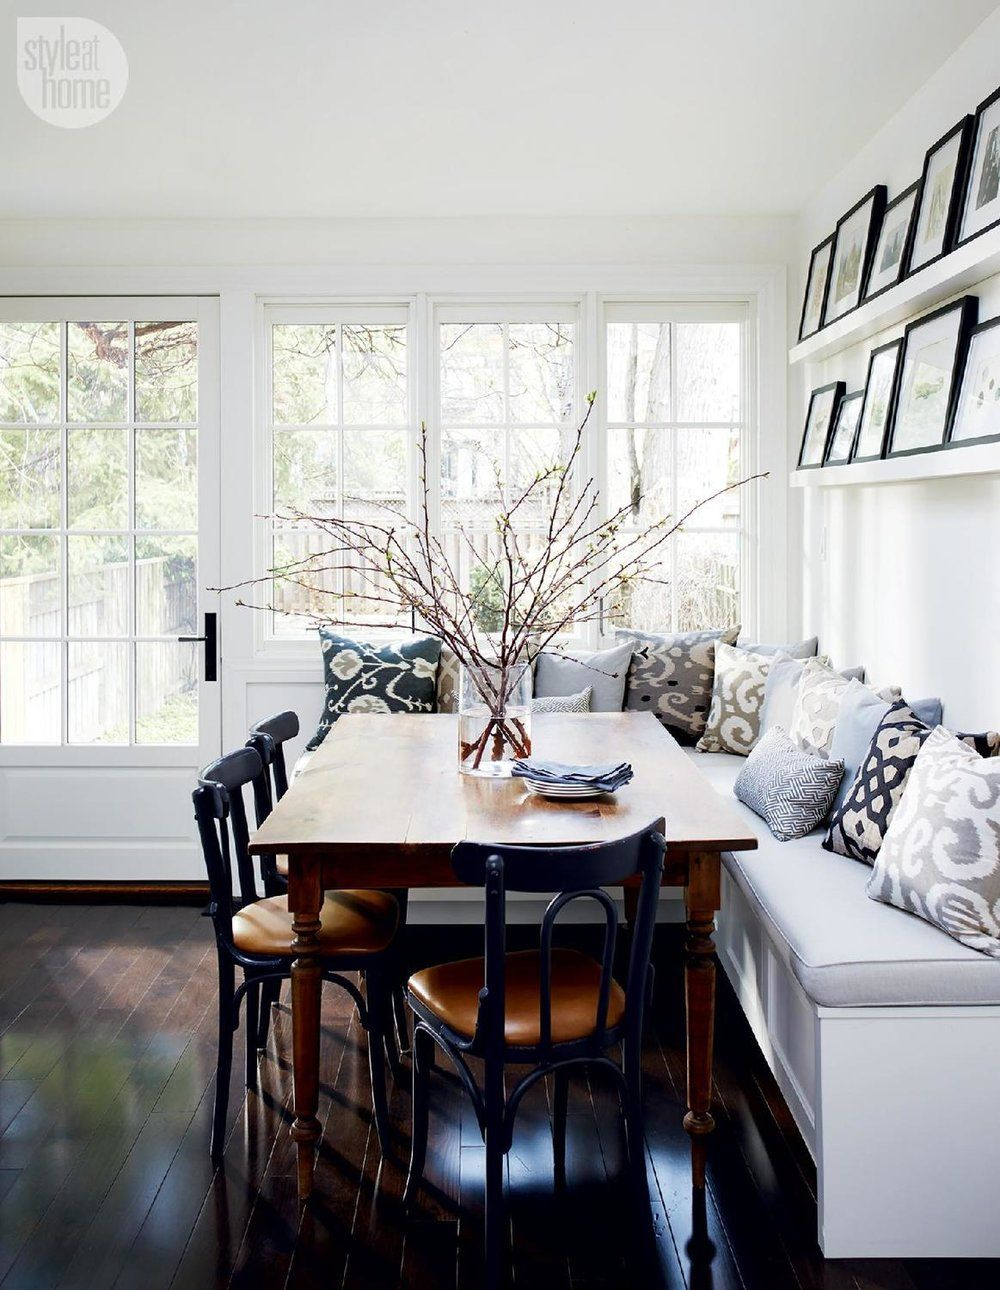 Small Home Style Three Design Ideas For Modern Banquette Dining Katrina Blair Interior Design Small Home Style Modern Livingkatrina Blair In 2020 Dining Room Design Dining Nook Banquette Seating